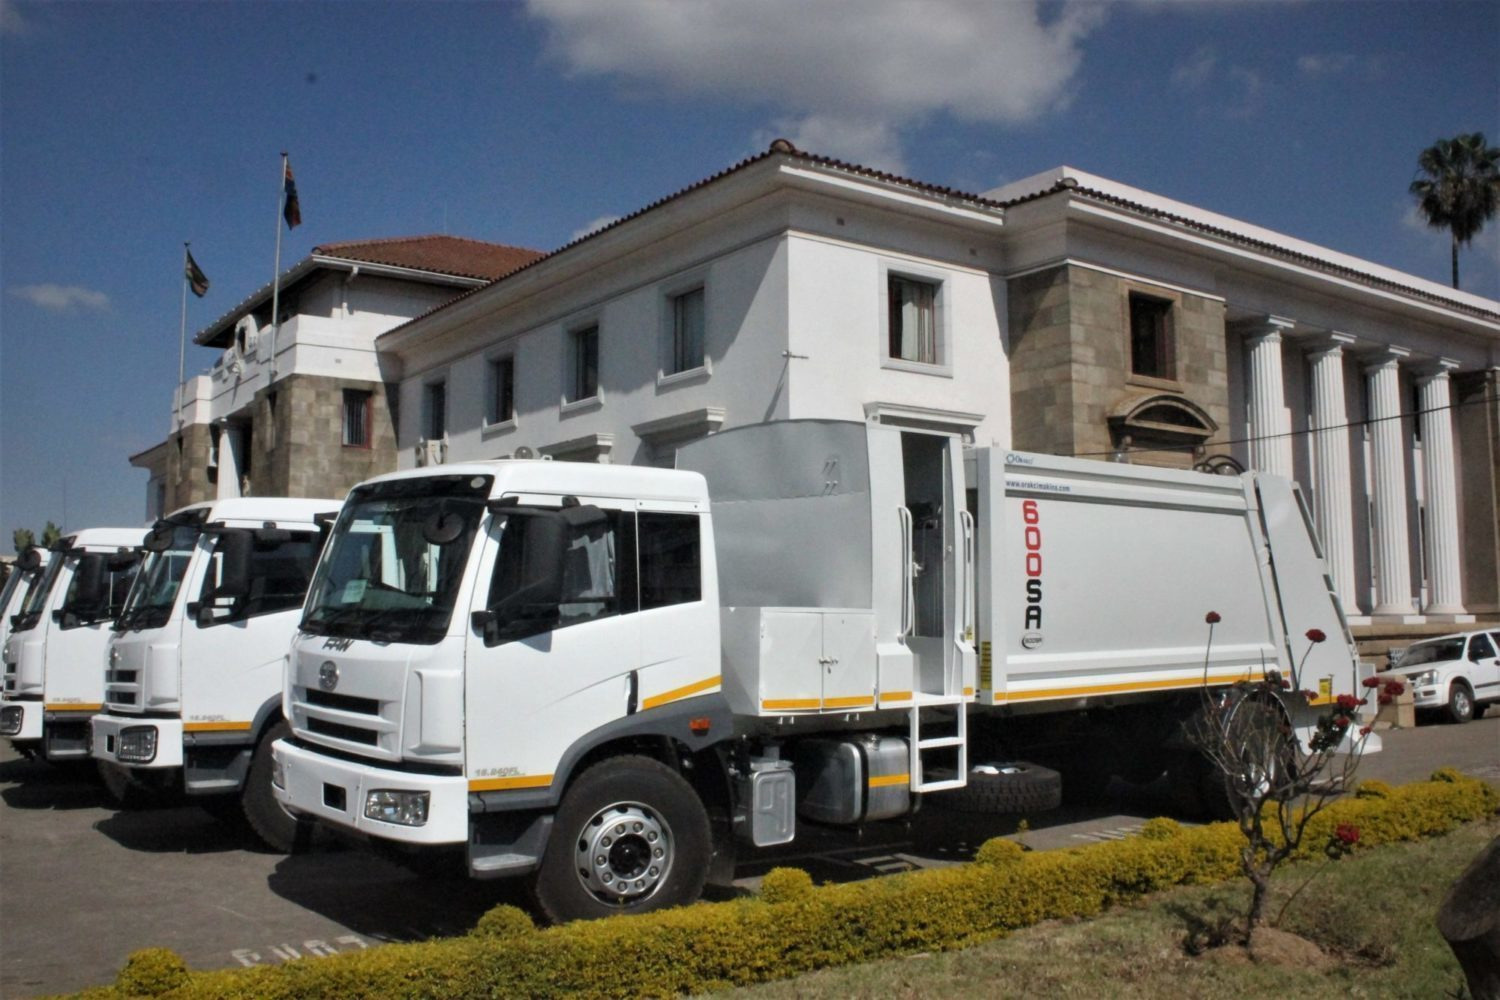 Harare council takes delivery of wrong refuse trucks